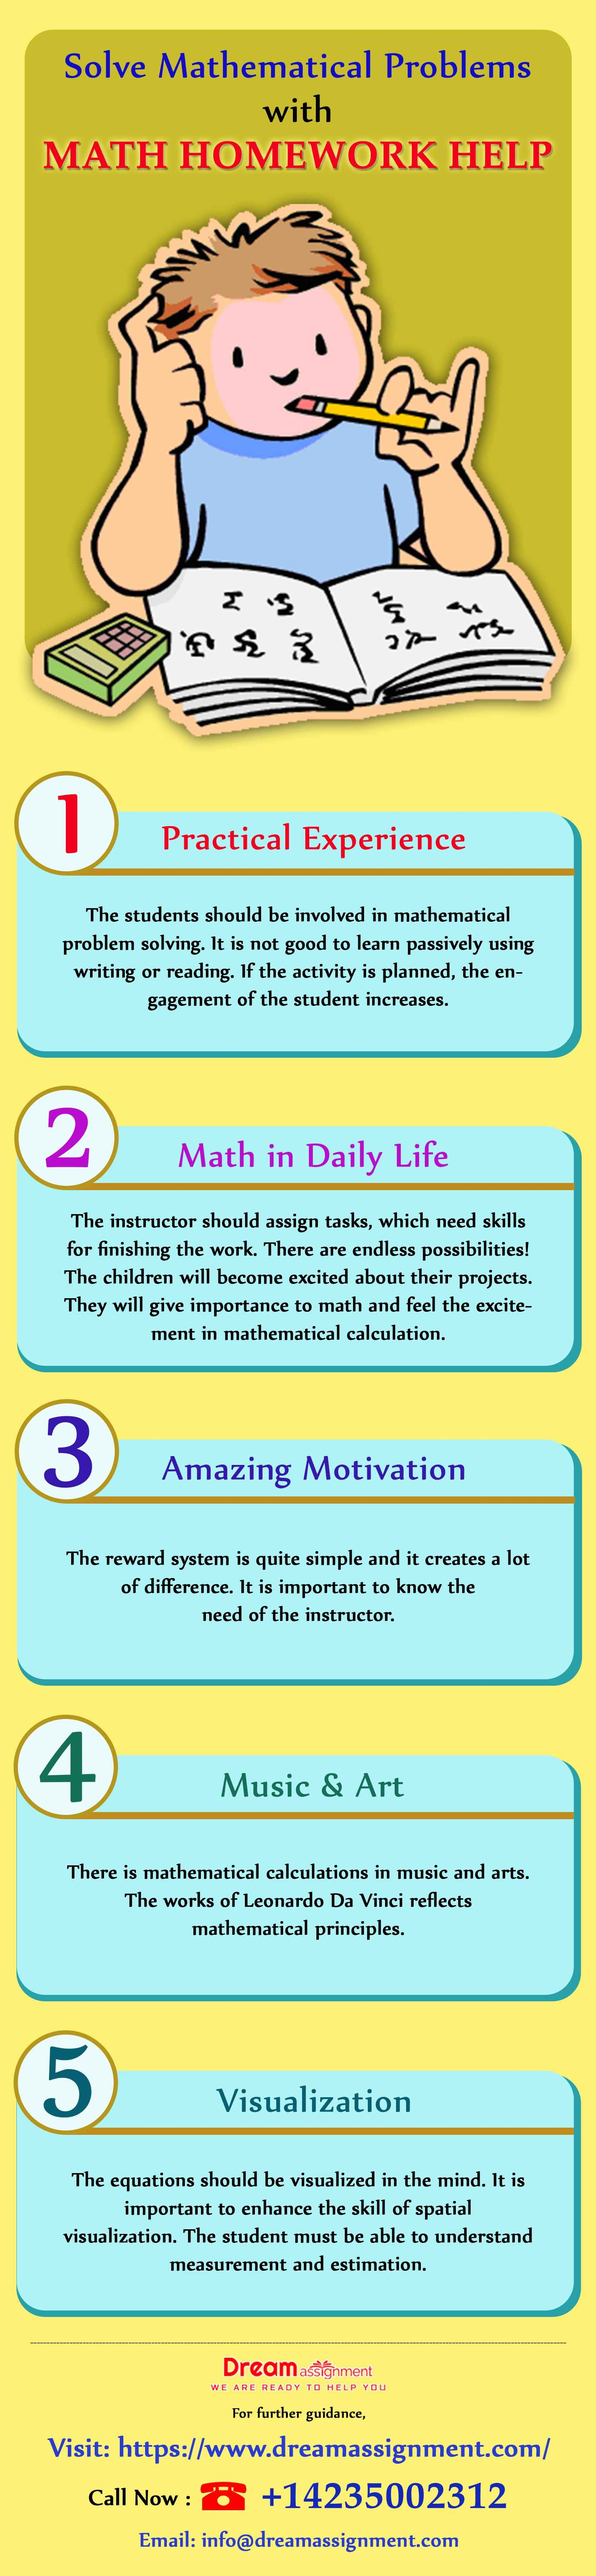 Solve Mathematical Problems with Math Homework Help (With